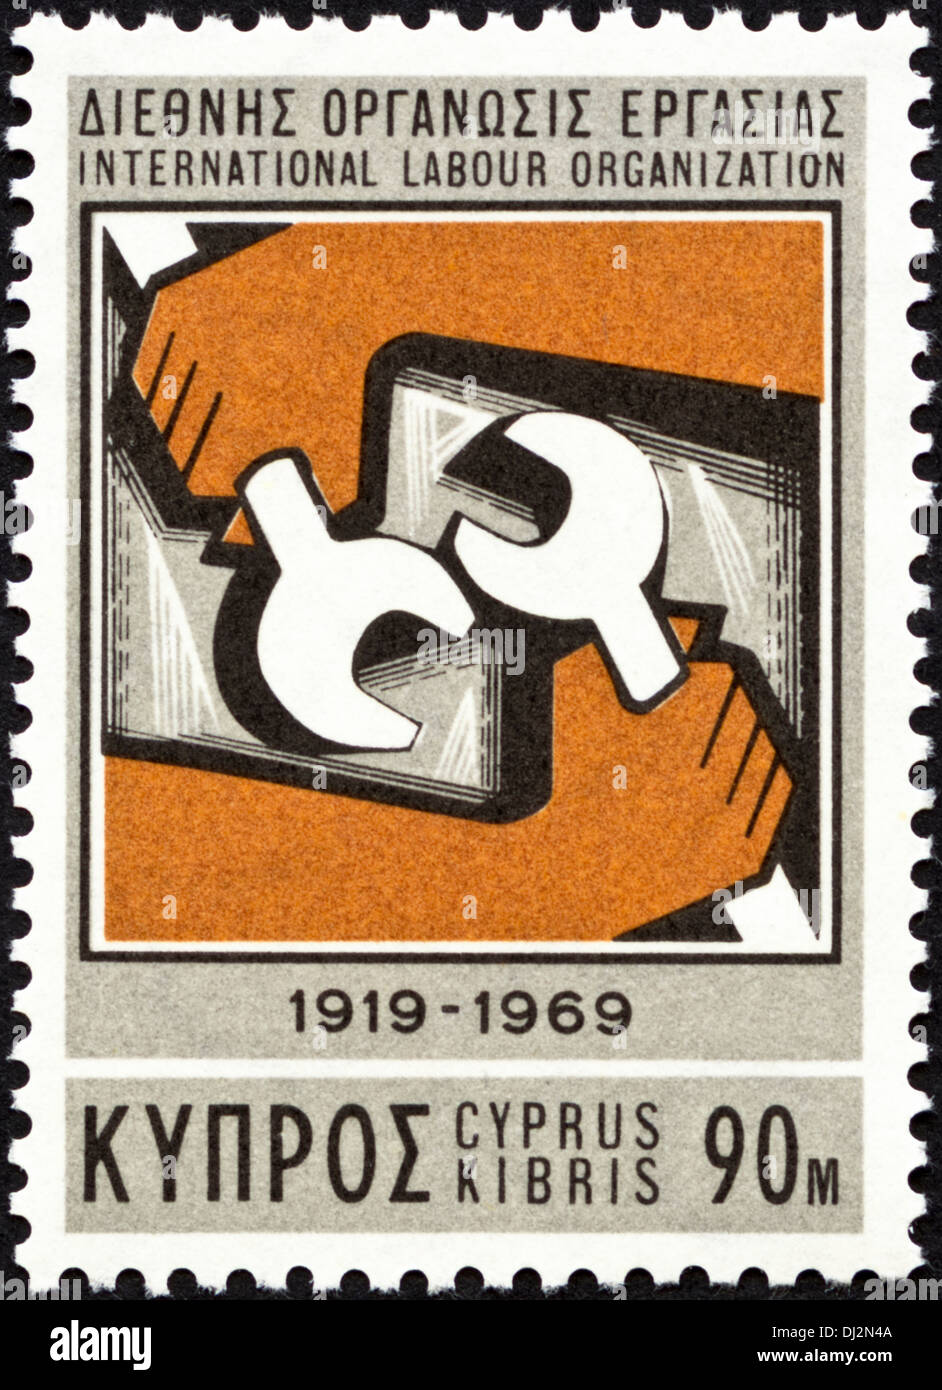 postage stamp Cyprus 90m featuring International Labour Organization 1919 - 1969 dated 1969 - Stock Image